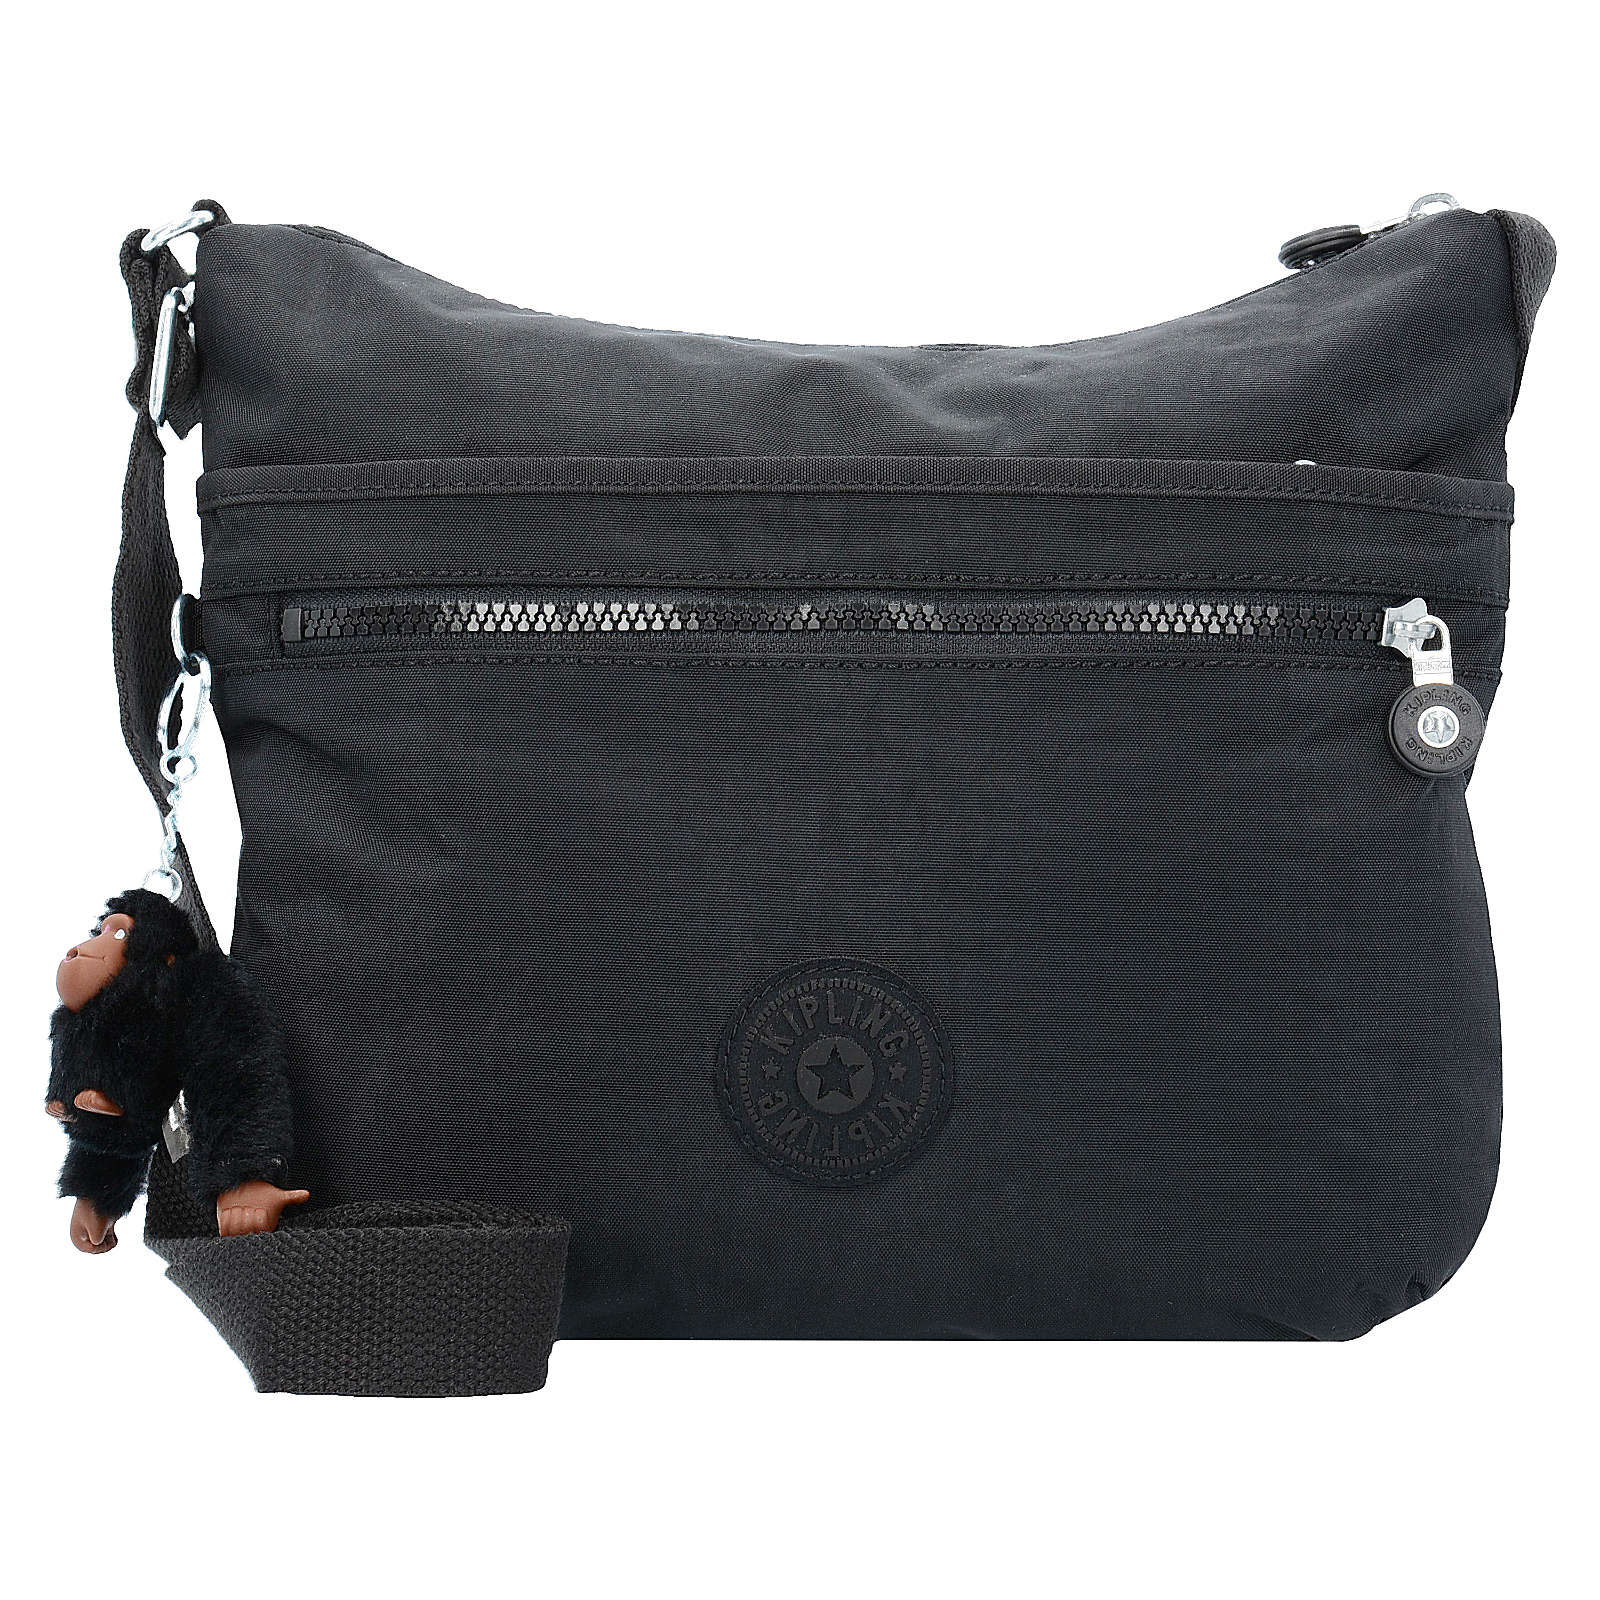 Kipling Basic Eyes Wide Open Arto Shoulderbag Tasche True Black Schwarz Neu